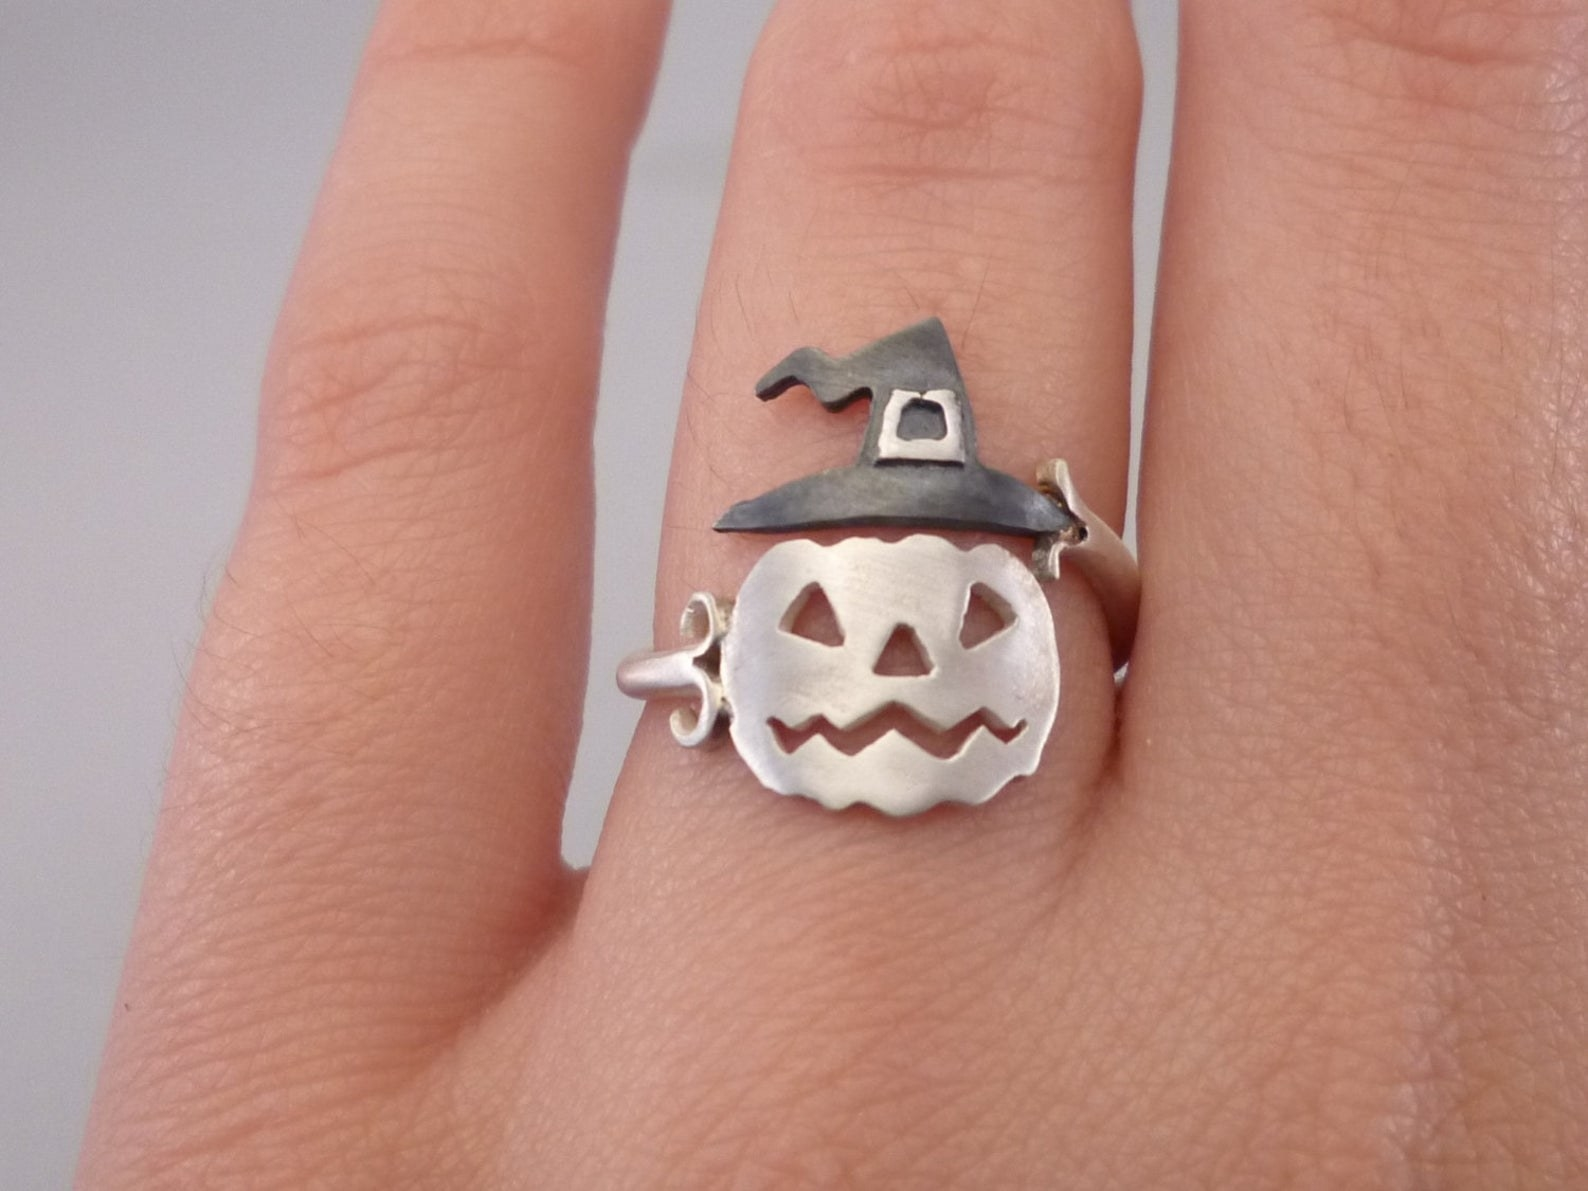 A ring with a jack-o-lantern wearing a witch's hat